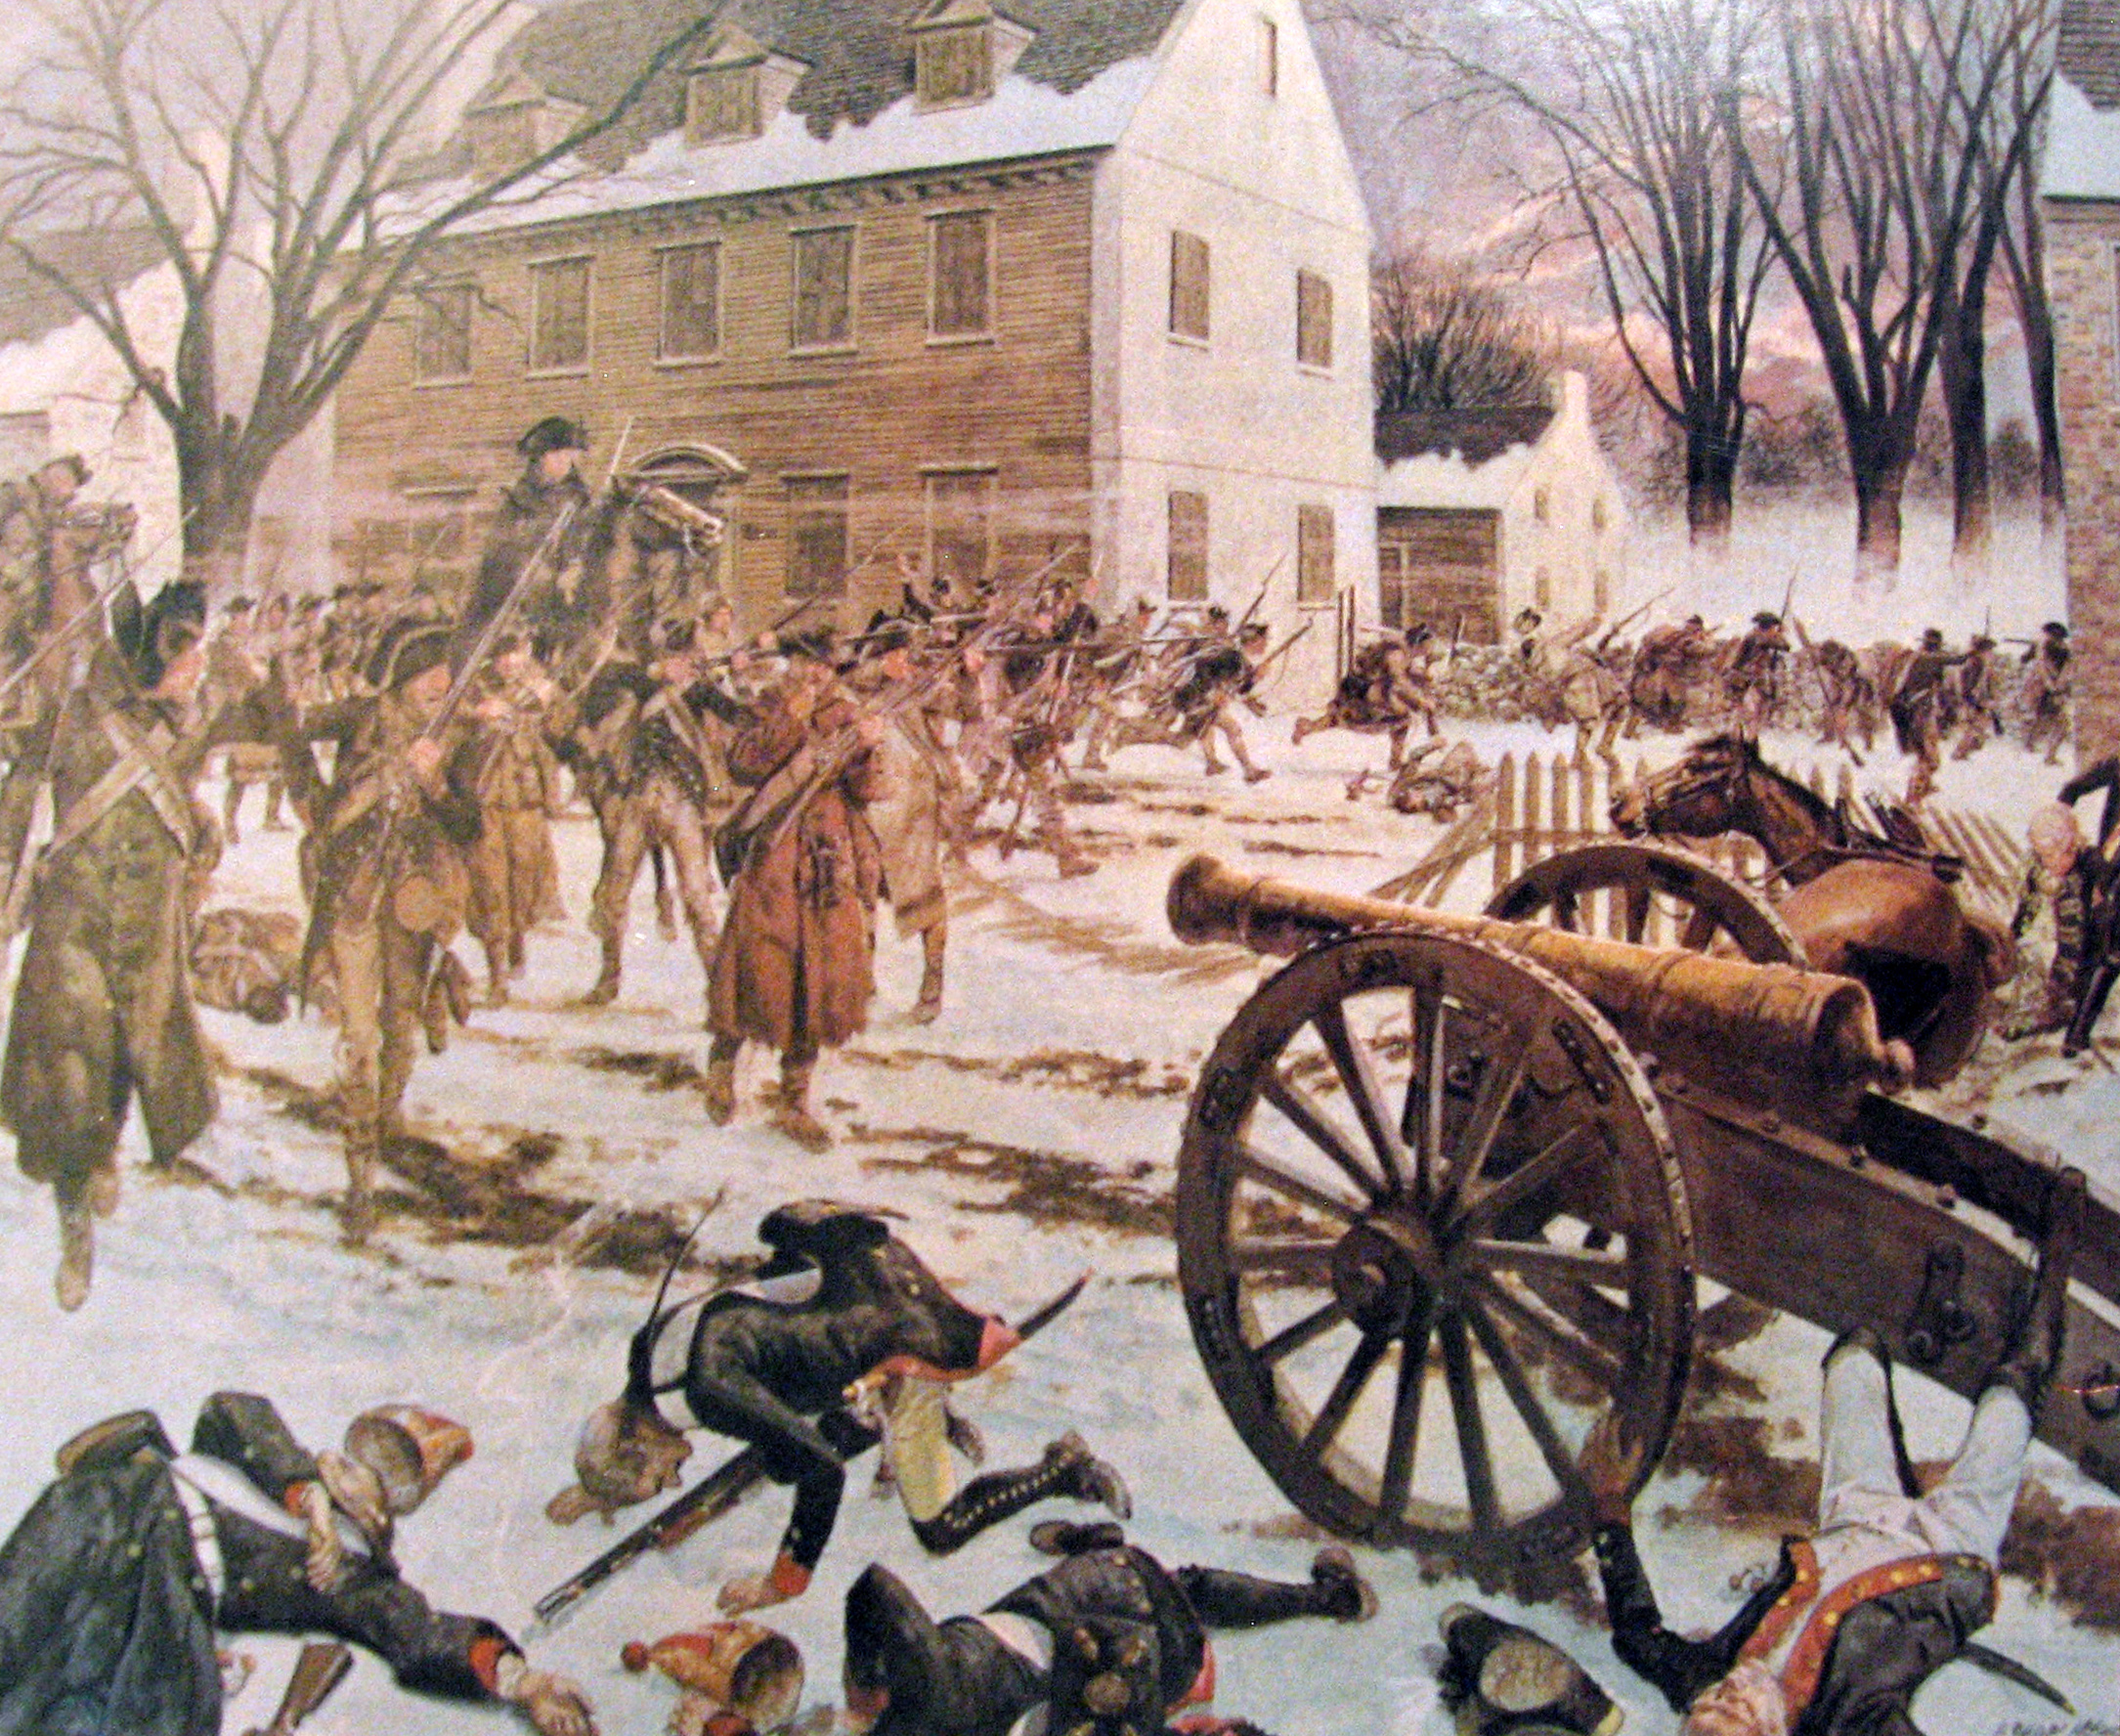 an introduction to the history of the battle of trenton in 1776 Us history & slavery: 1772-1776 -introduction- by 1772, the institution of slavery had been present in the americas for over 250 years the first sl august 27, 1776 battle of long island december 26, 1776 battle of trenton 1776 youtube [ link] unmodified map bases sources [link] and [link] unmodified.